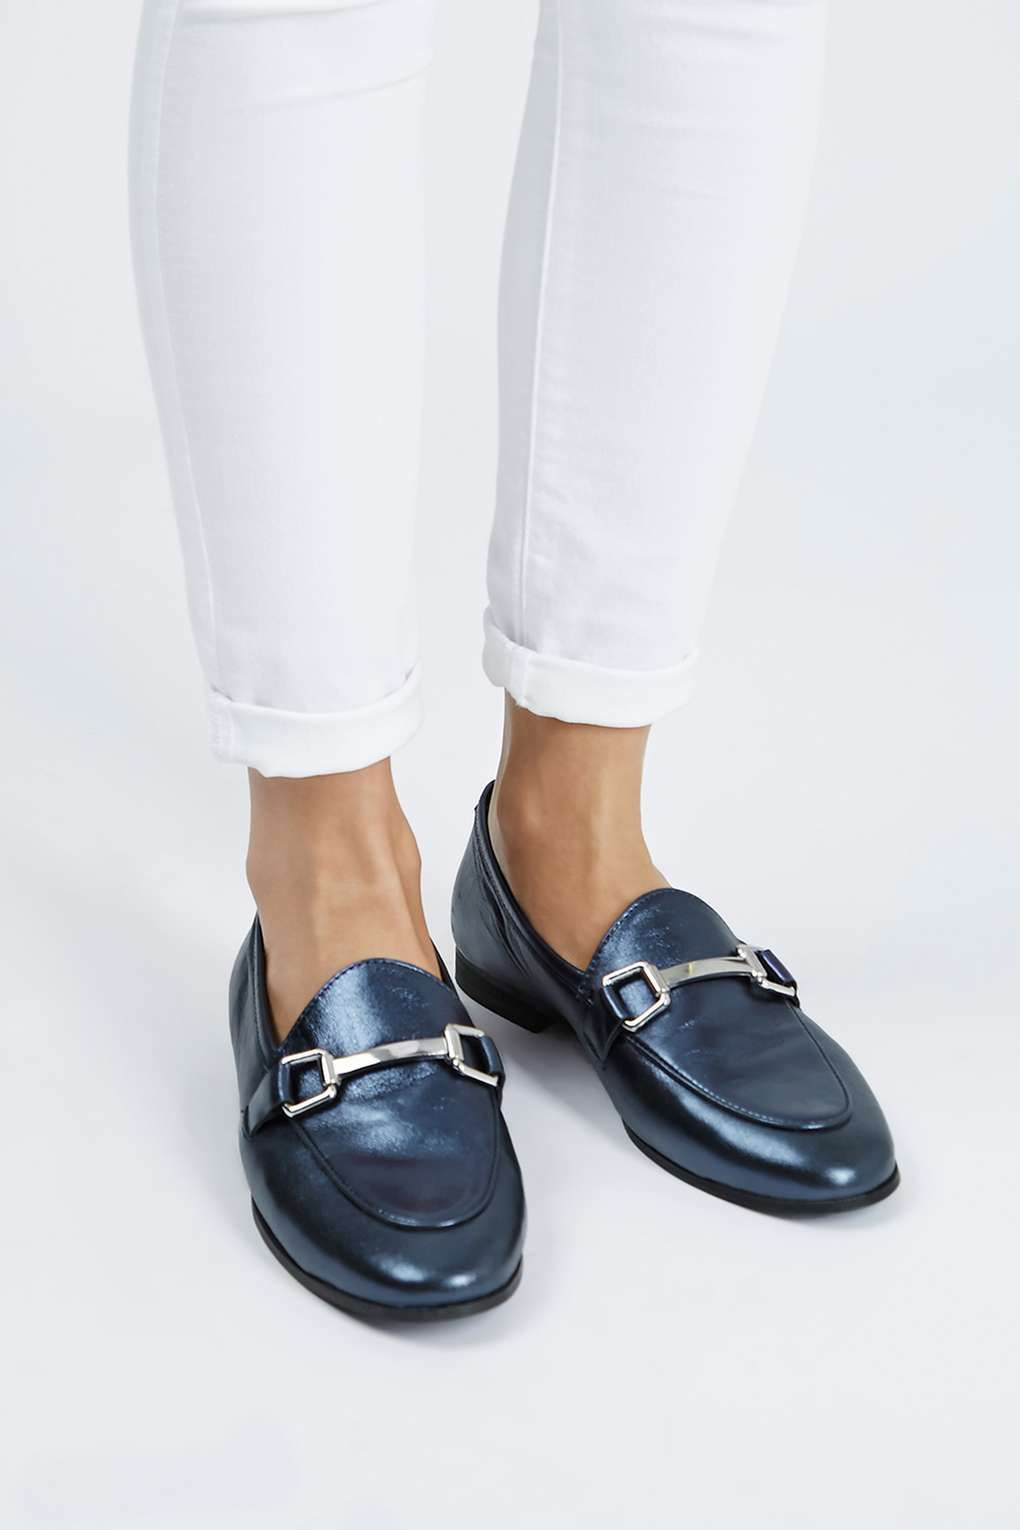 407041f501 KENDALL Leather Loafers in 2019